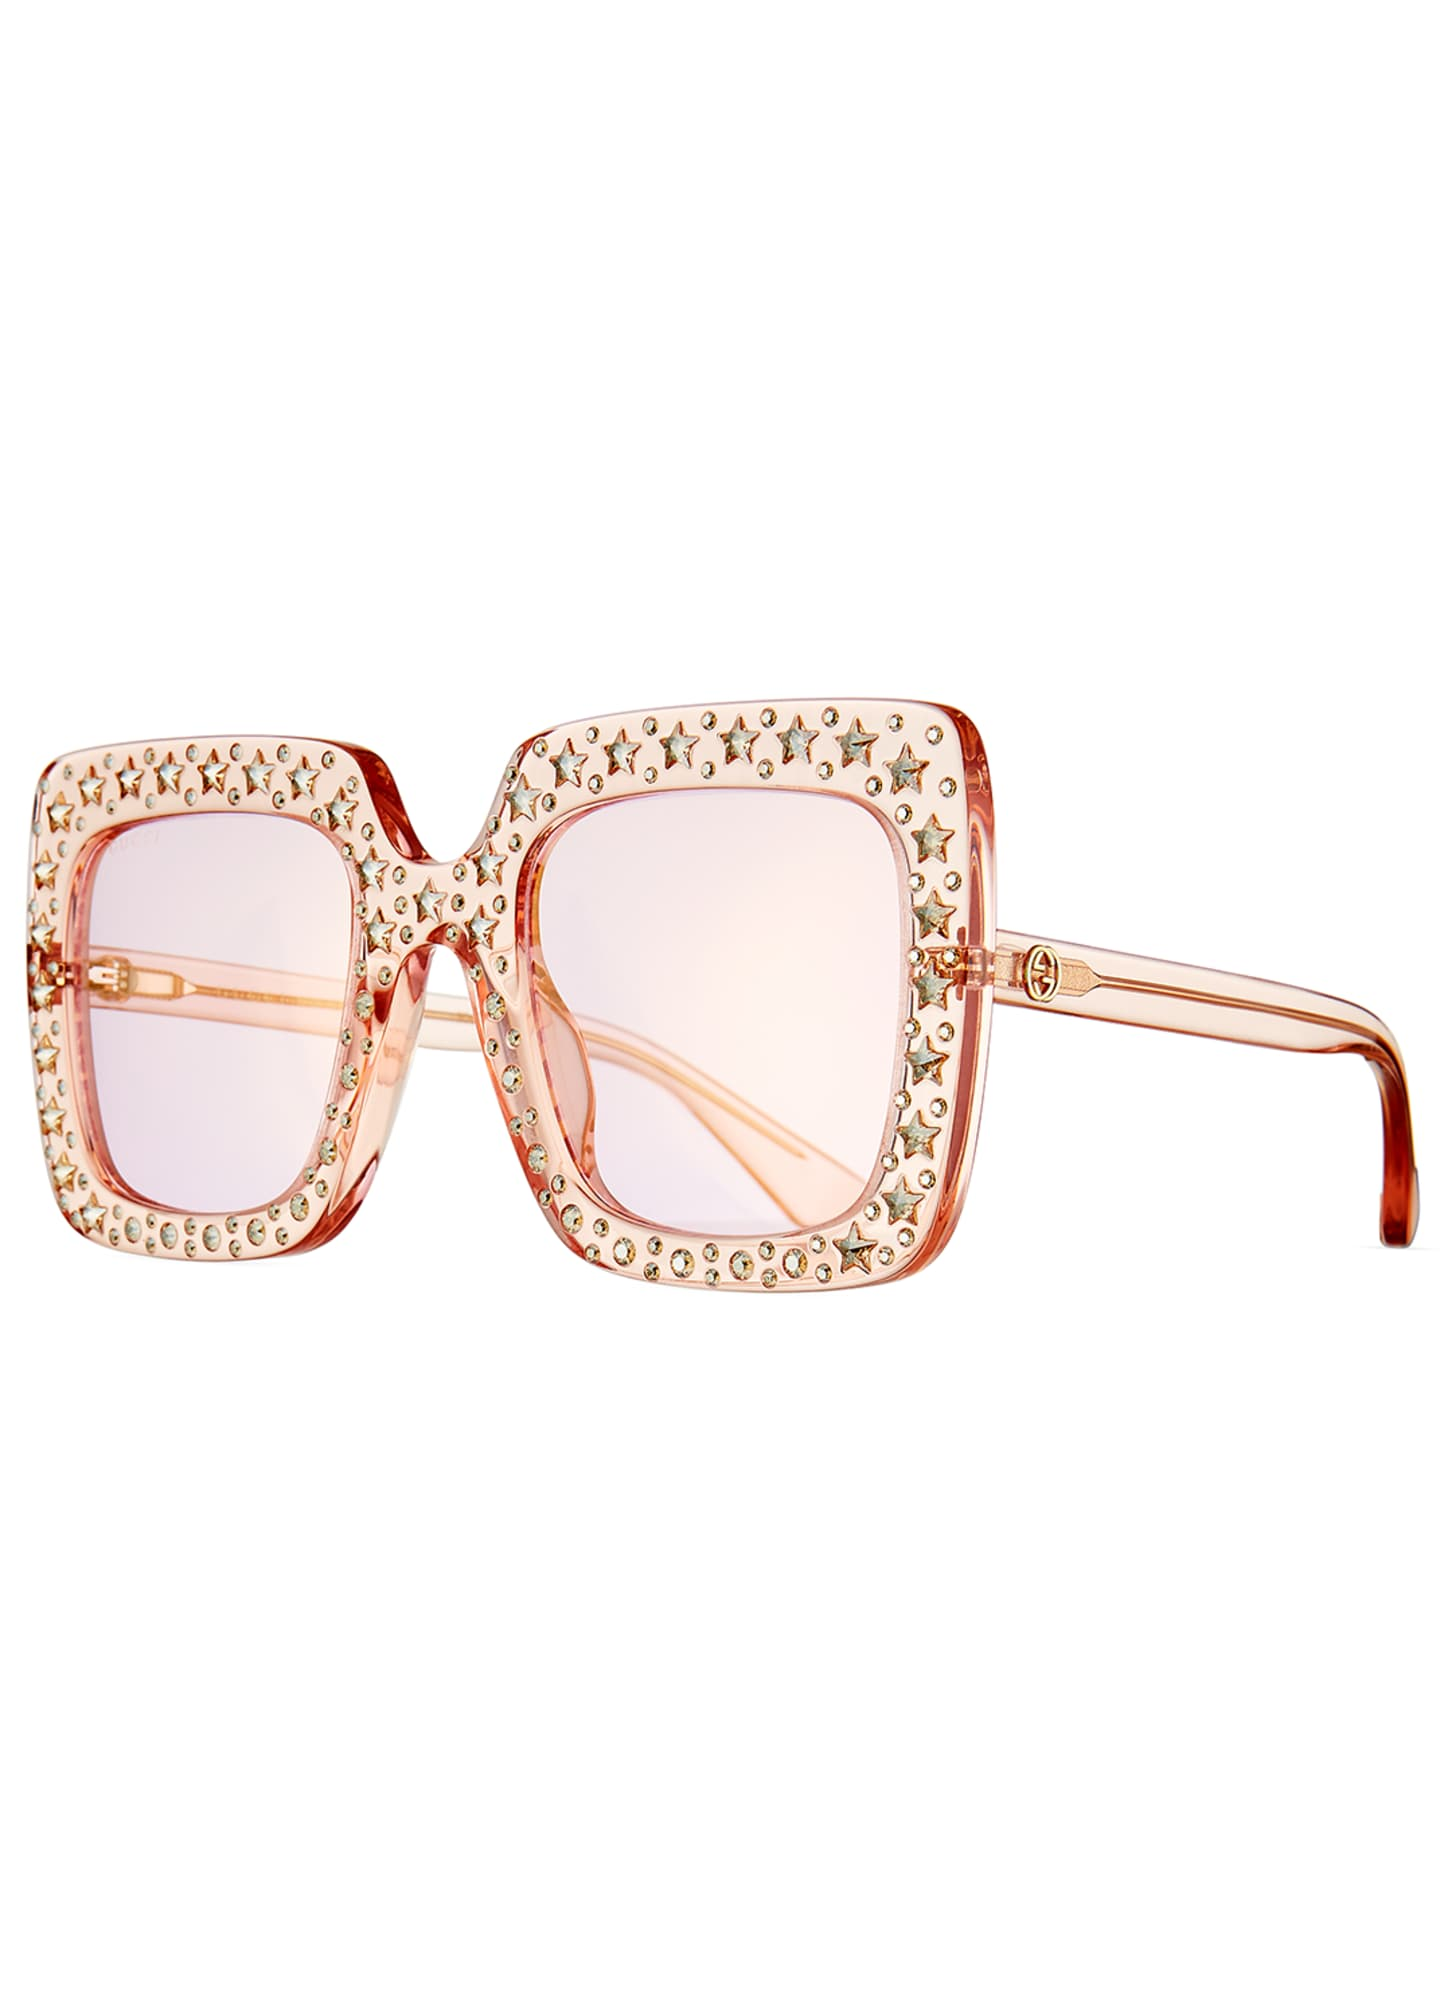 Gucci Oversized Square Transparent Sunglasses w/ Crystal Star